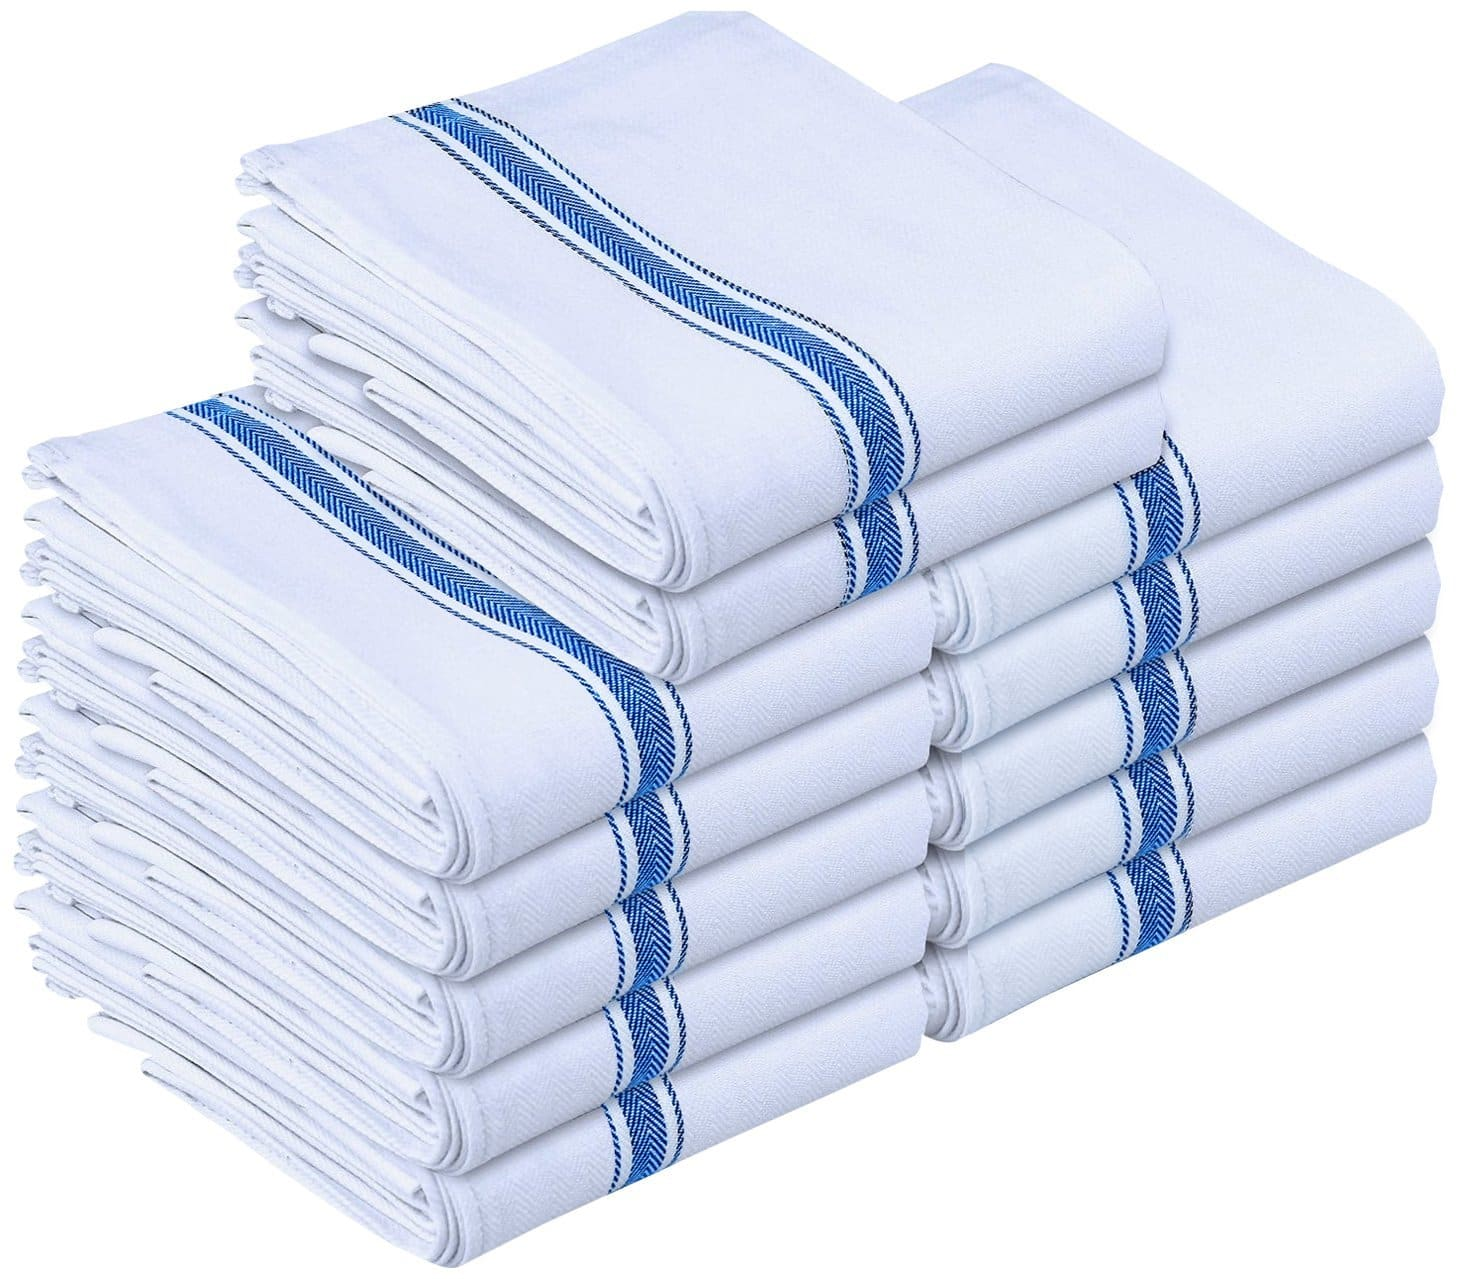 30% off Kitchen Towels Dish Cloth - 12 Pack By Utopia Deals $10.49